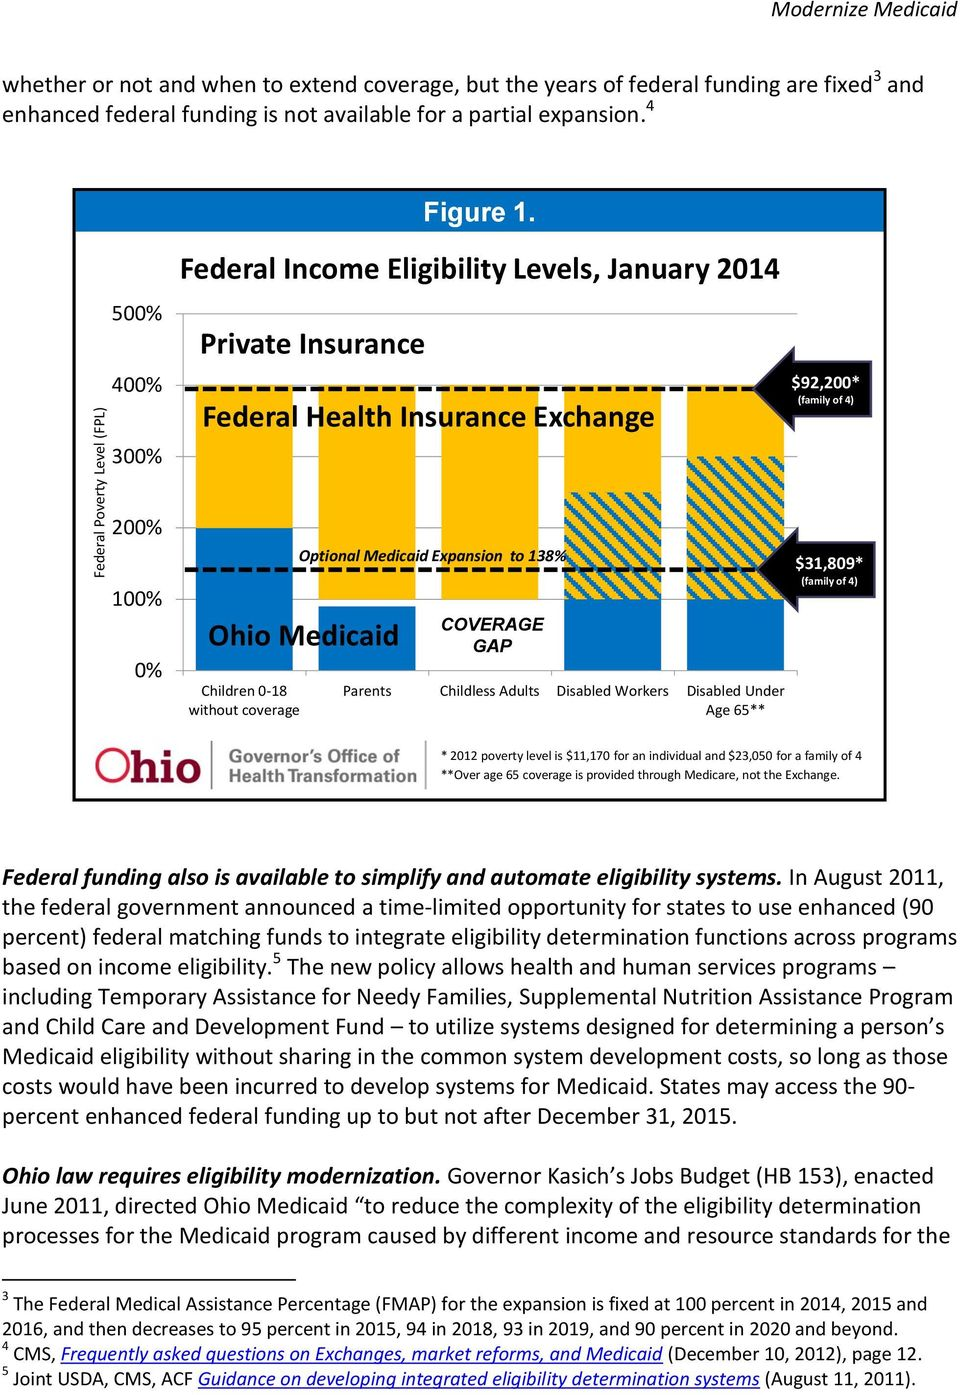 500% 400% 300% Federal Income Eligibility Levels, January 2014 Private Insurance Federal Health Insurance Exchange $92,200* (family of 4) 200% 100% 0% Ohio Medicaid Children 0-18 without coverage